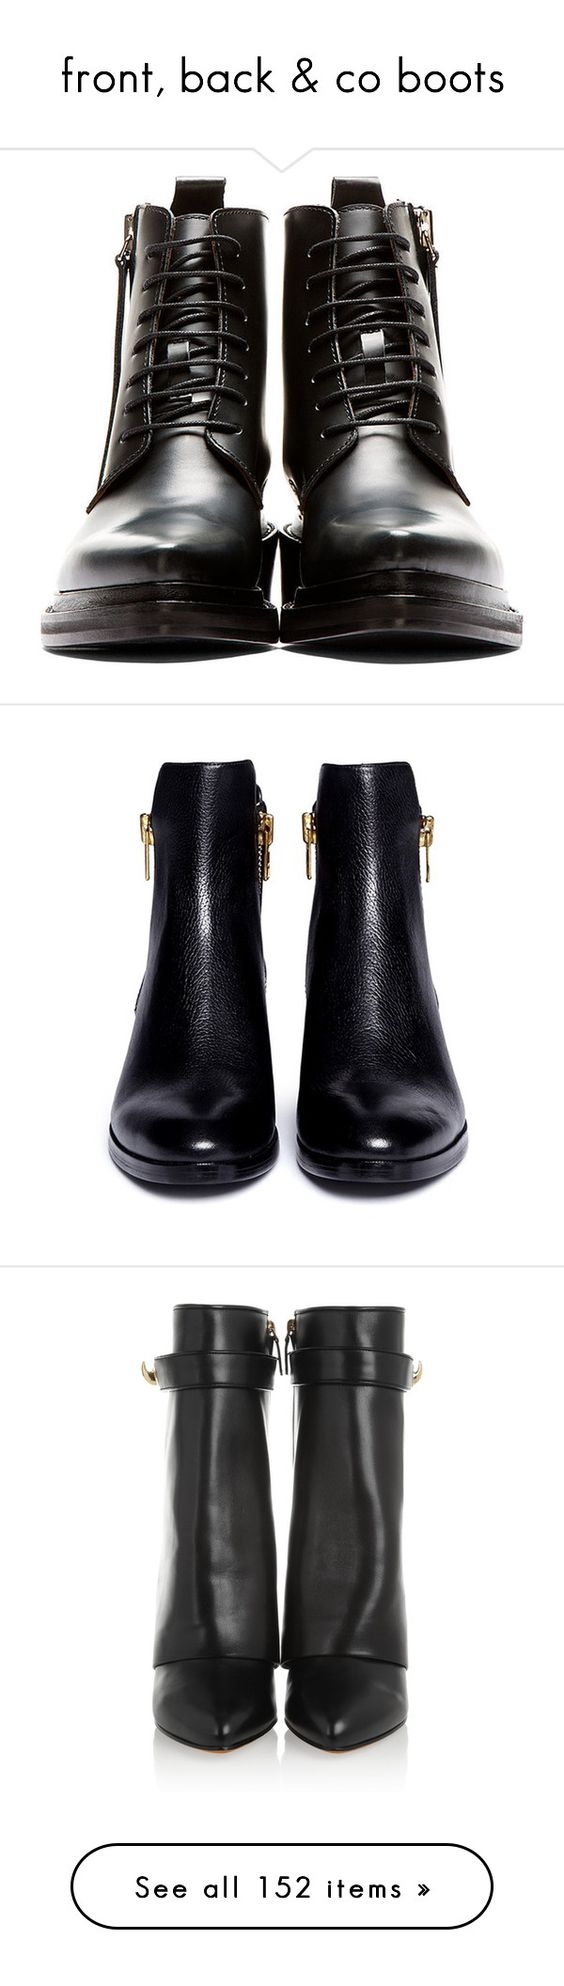 """front, back & co boots"" by linea-prima ❤ liked on Polyvore featuring shoes, boots, ankle booties, short black boots, black leather bootie, pointy toe booties, lace up booties, black leather boots, short suede boots and leather ankle boots"